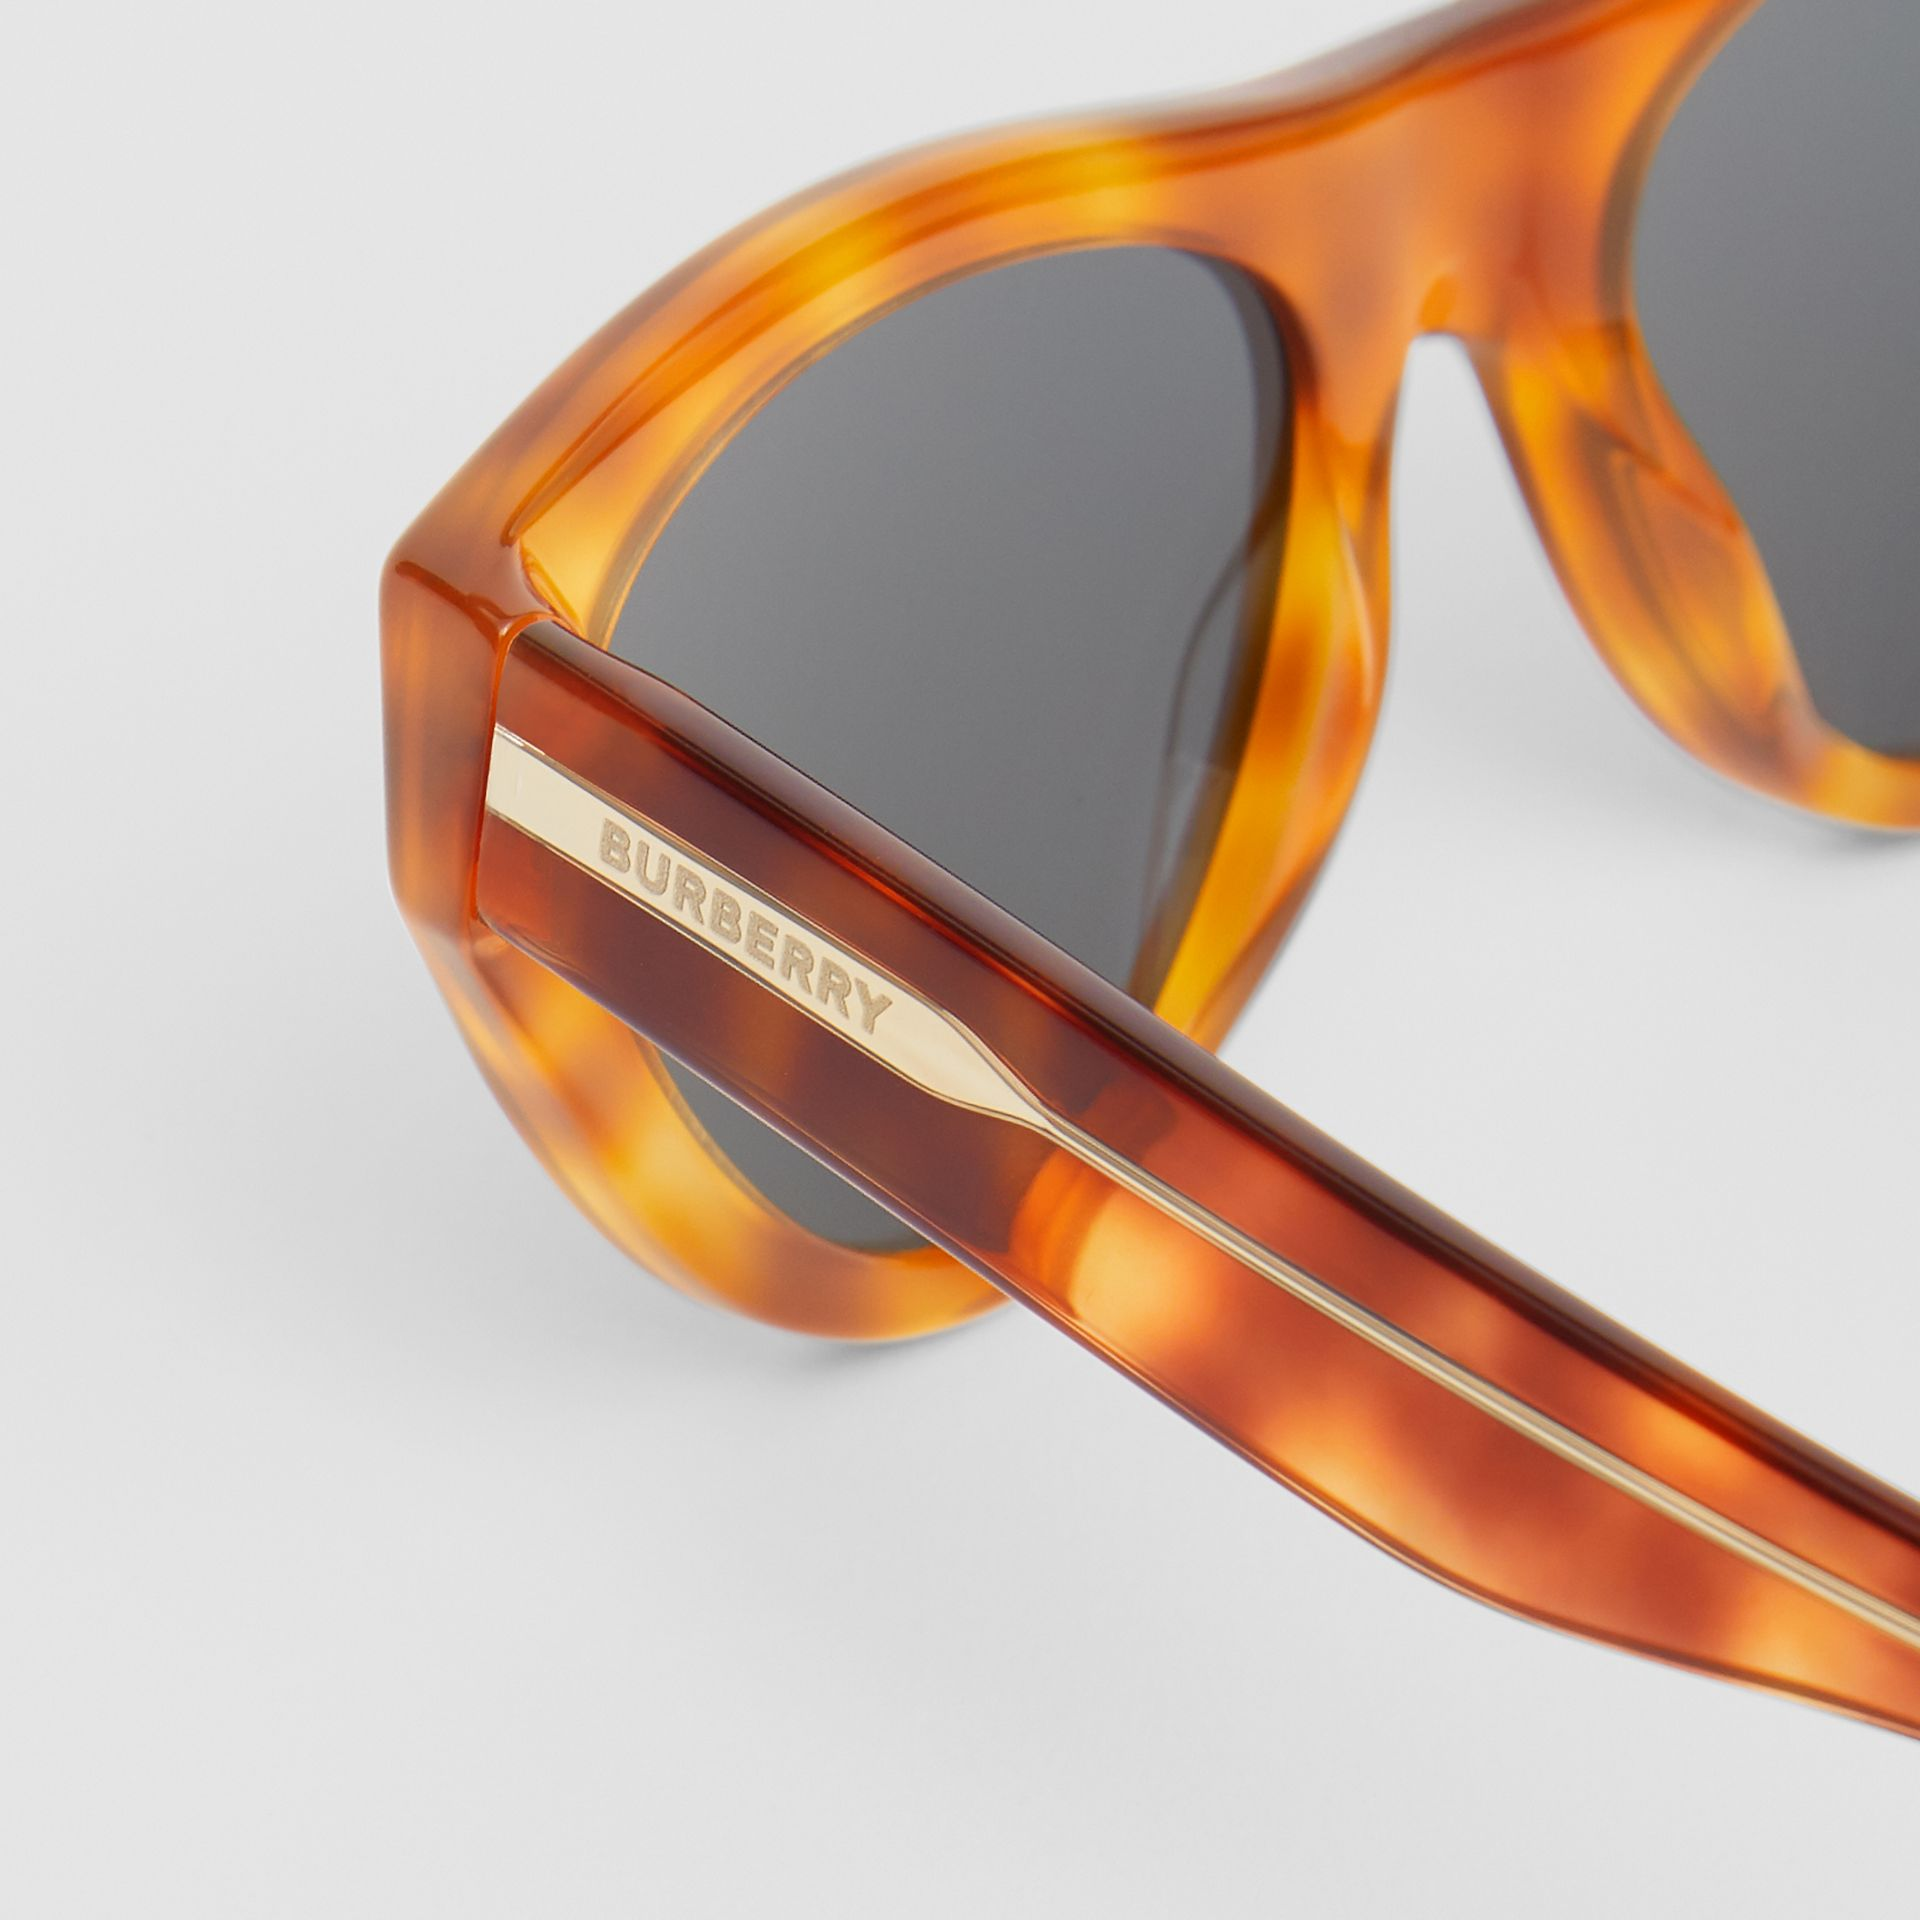 Triangular Frame Sunglasses in Amber Tortoiseshell - Women | Burberry - gallery image 1